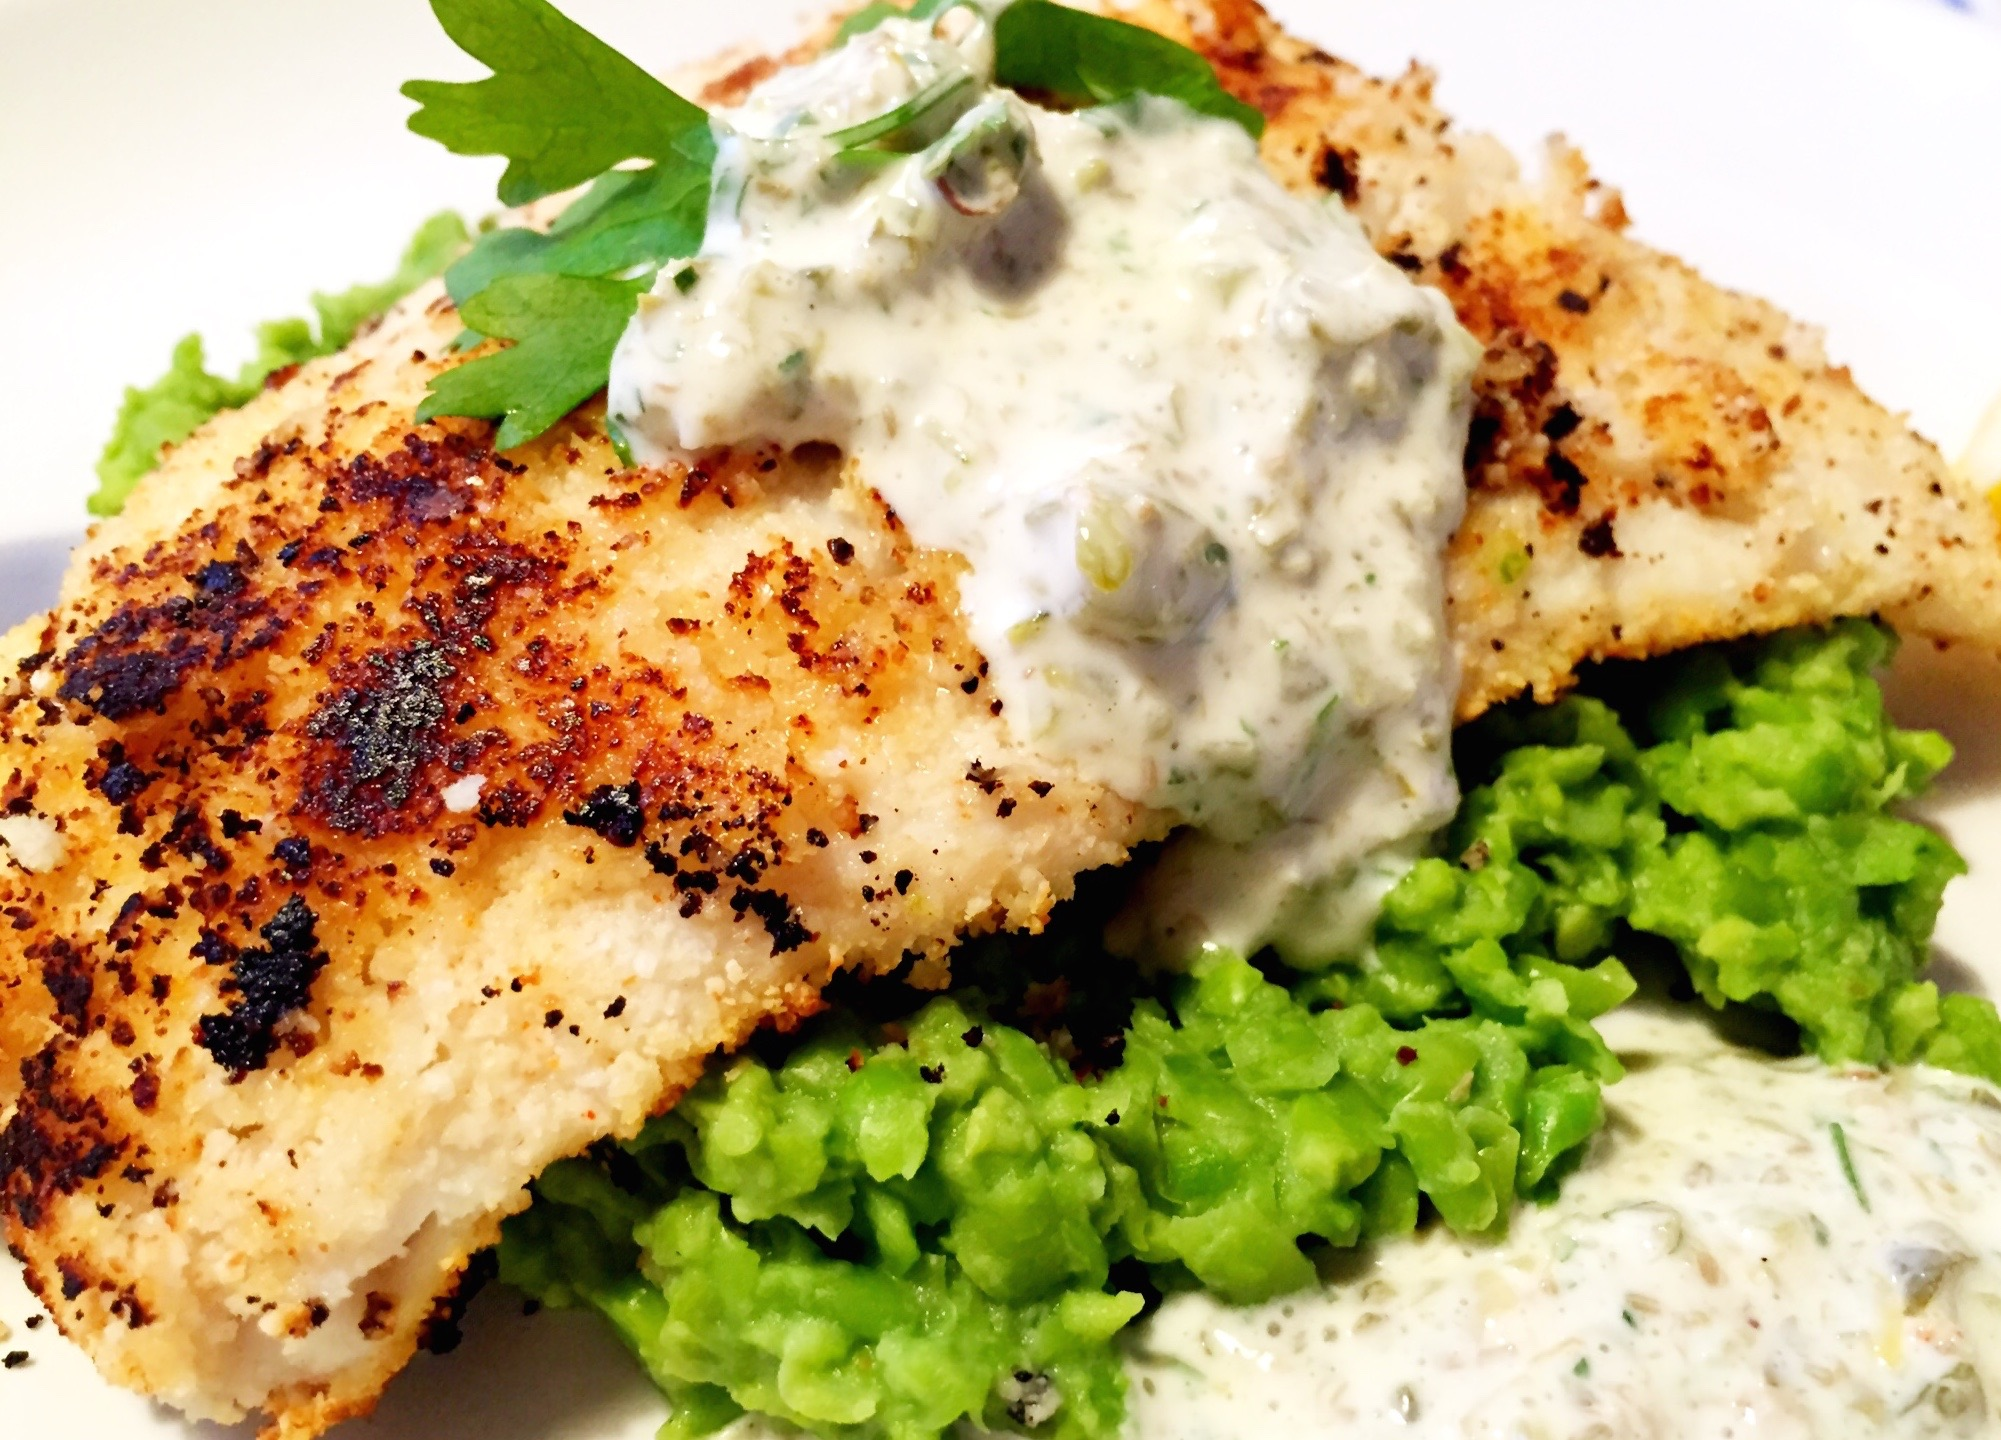 Crispy cod and tartar sauce the little green spoon for How to make tartar sauce for fish fillet